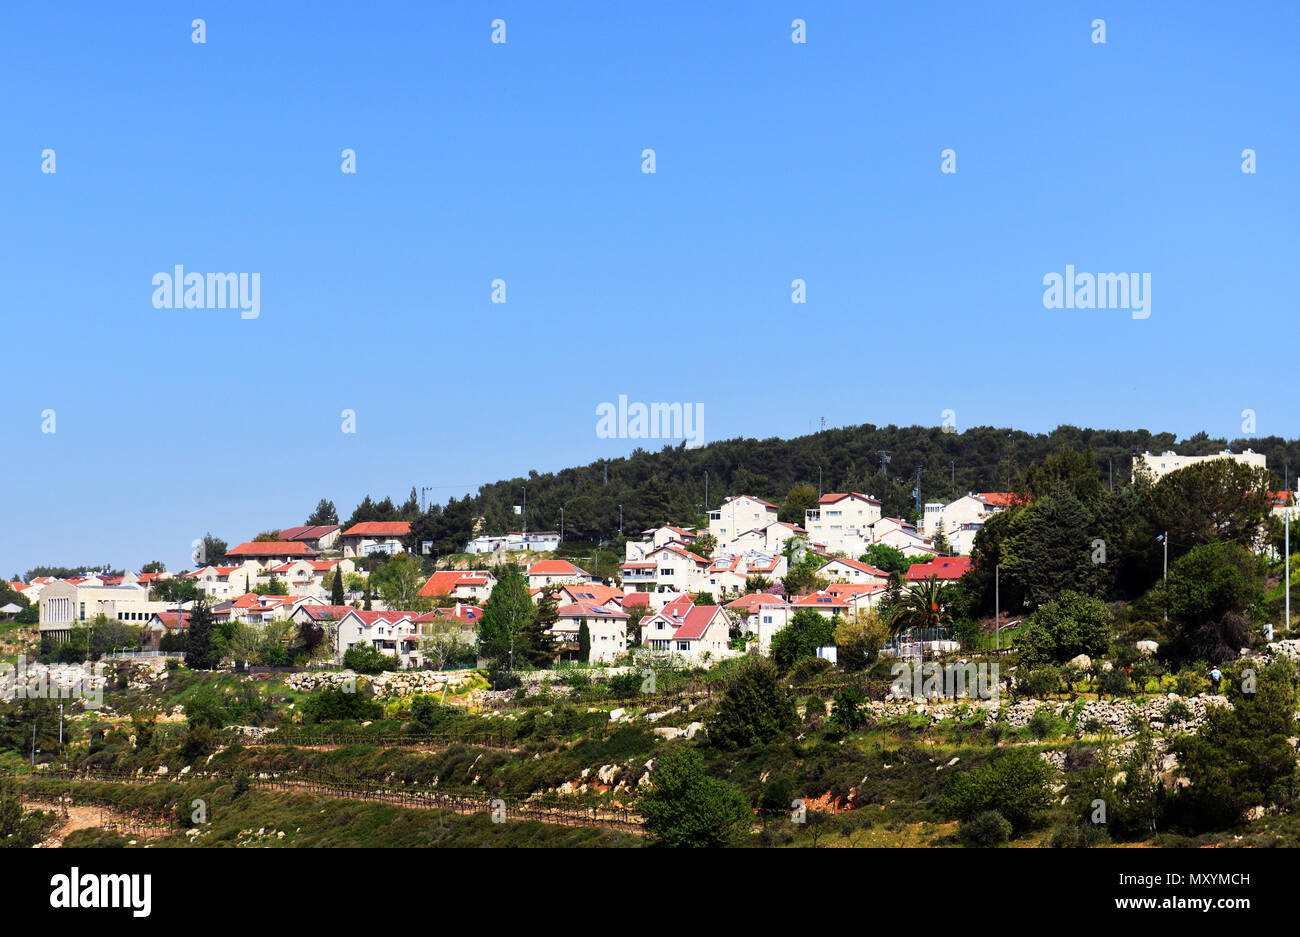 Jewish settlements and towns in the West Bank. - Stock Image